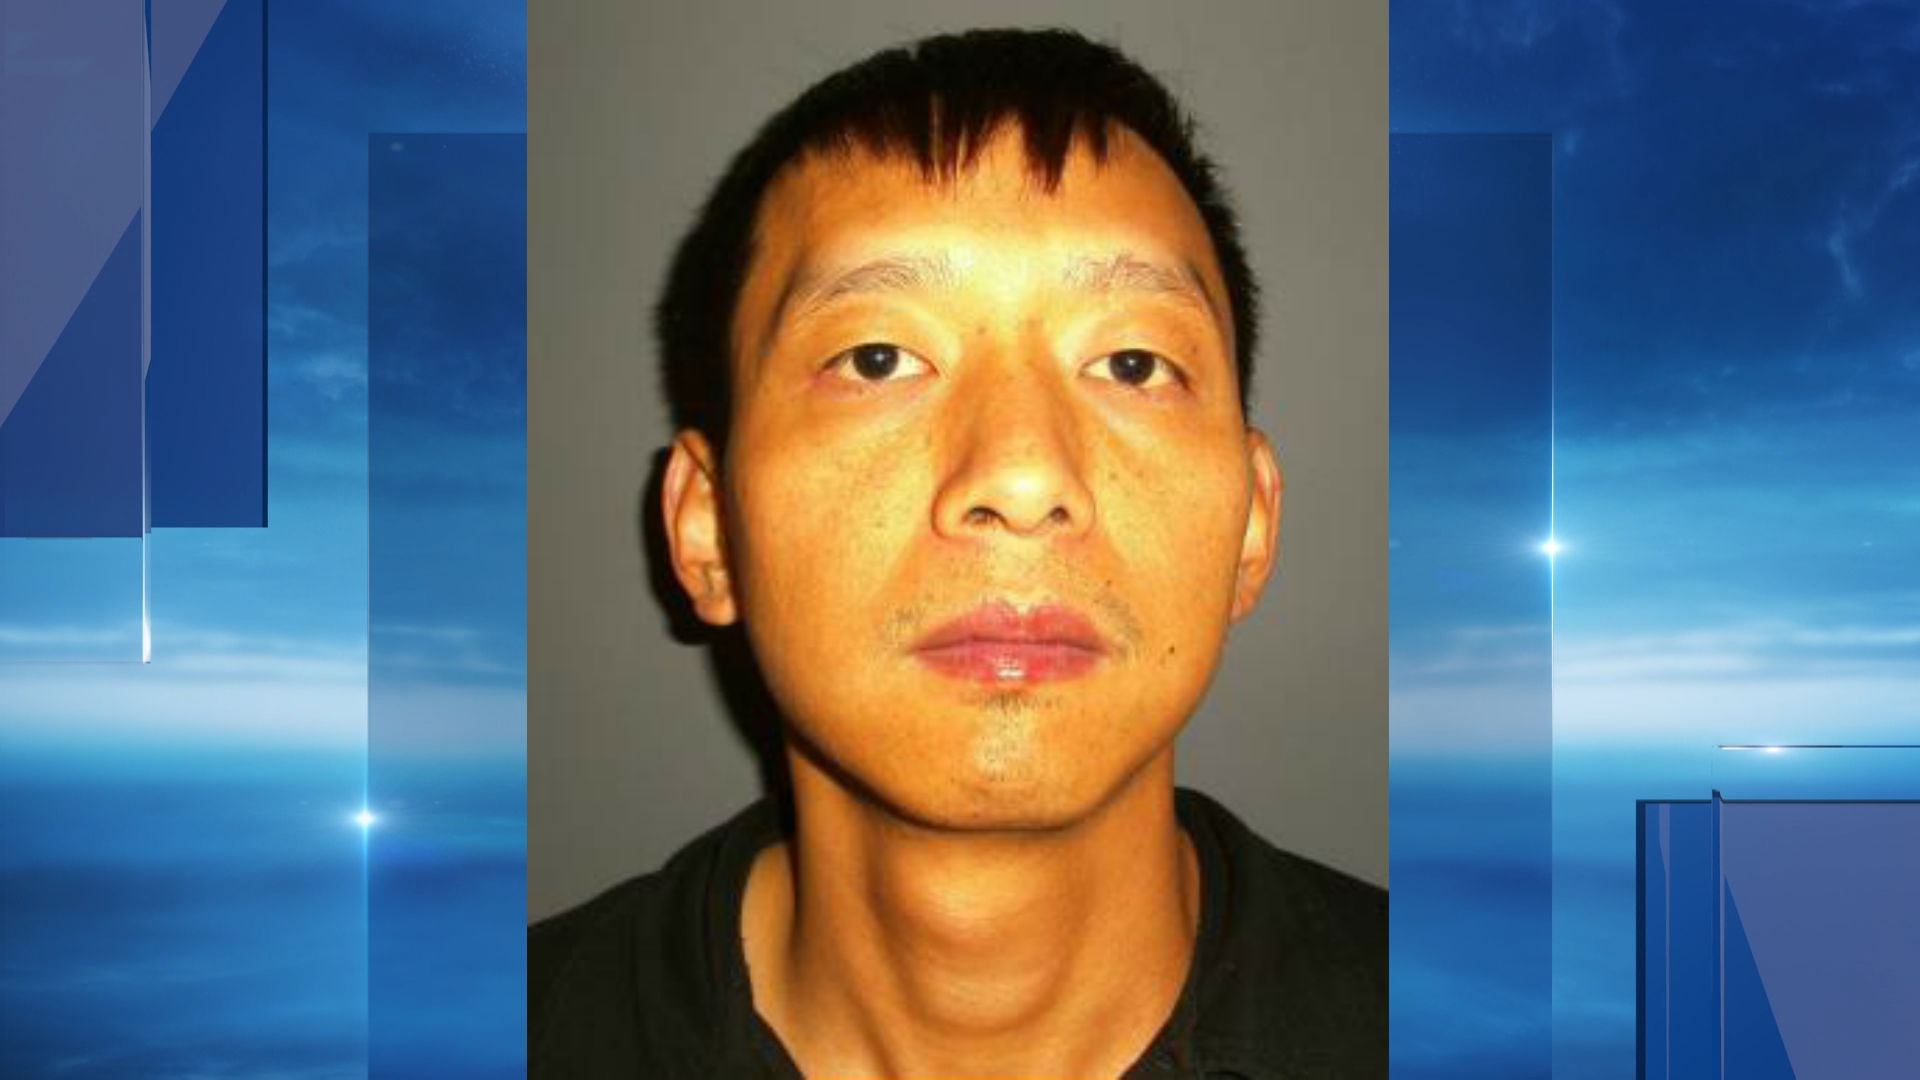 California City police say they've arrested Ming Xing Sun after finding him growing more than 700 marijuana plants. (Photo from California City Police Department)